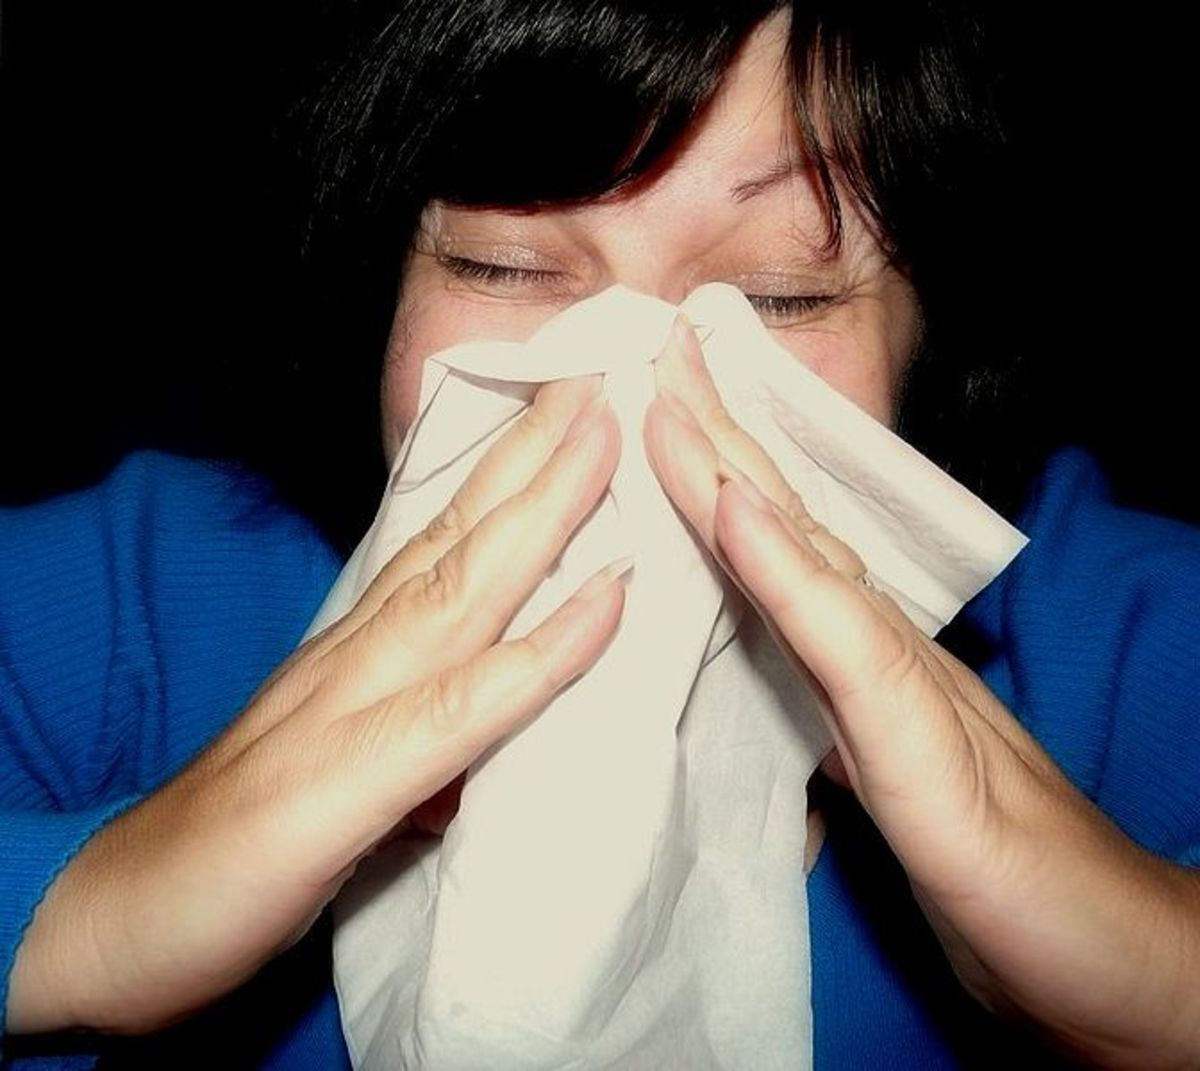 Cover that cough or sneeze!